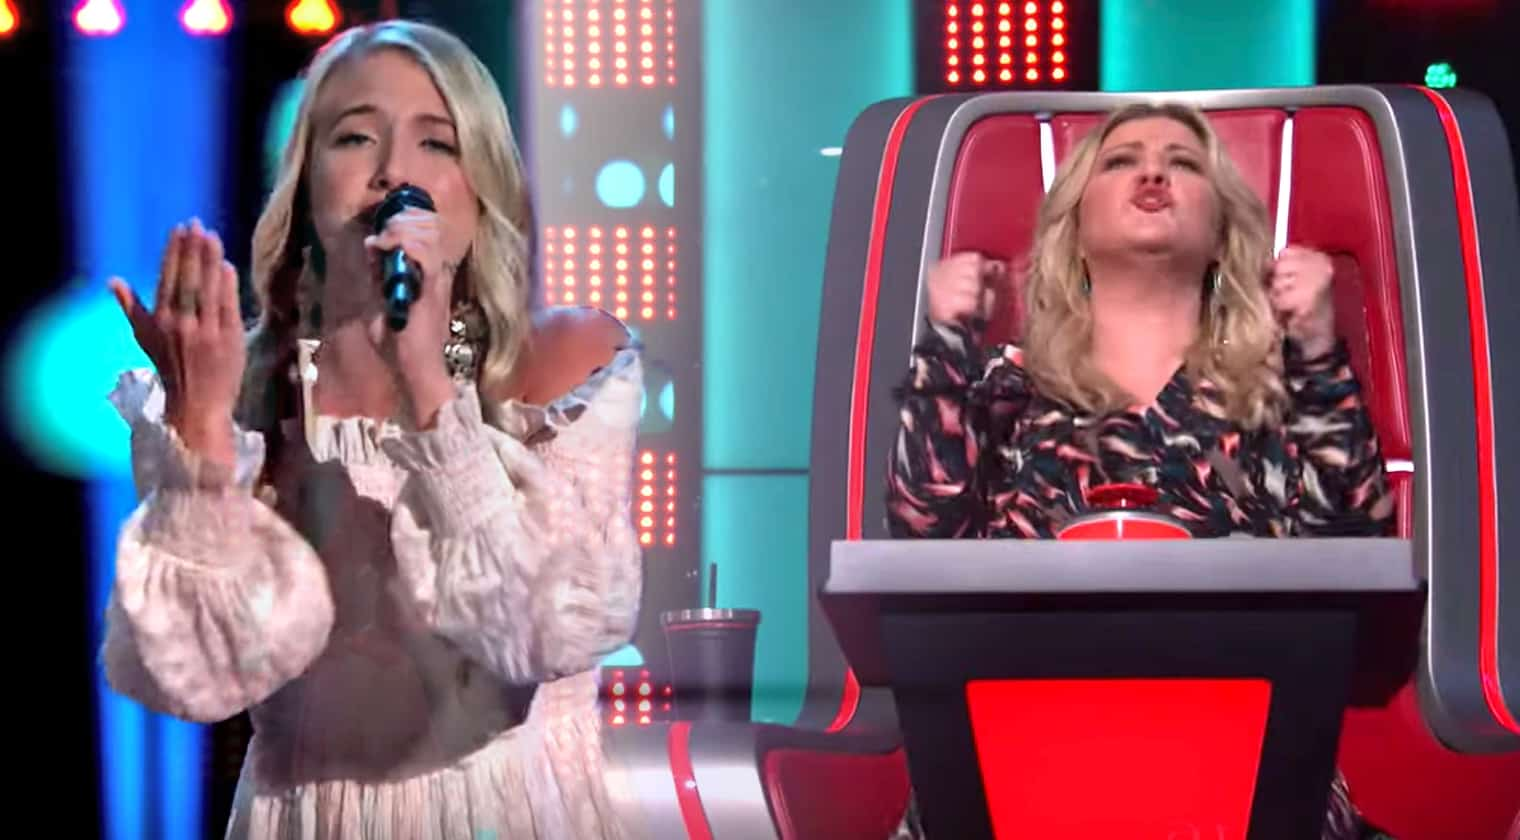 Blind Audition You Are My Sunshine Gets 4 Chair Turn For Singer Brennan Lassiter Country Music Nation